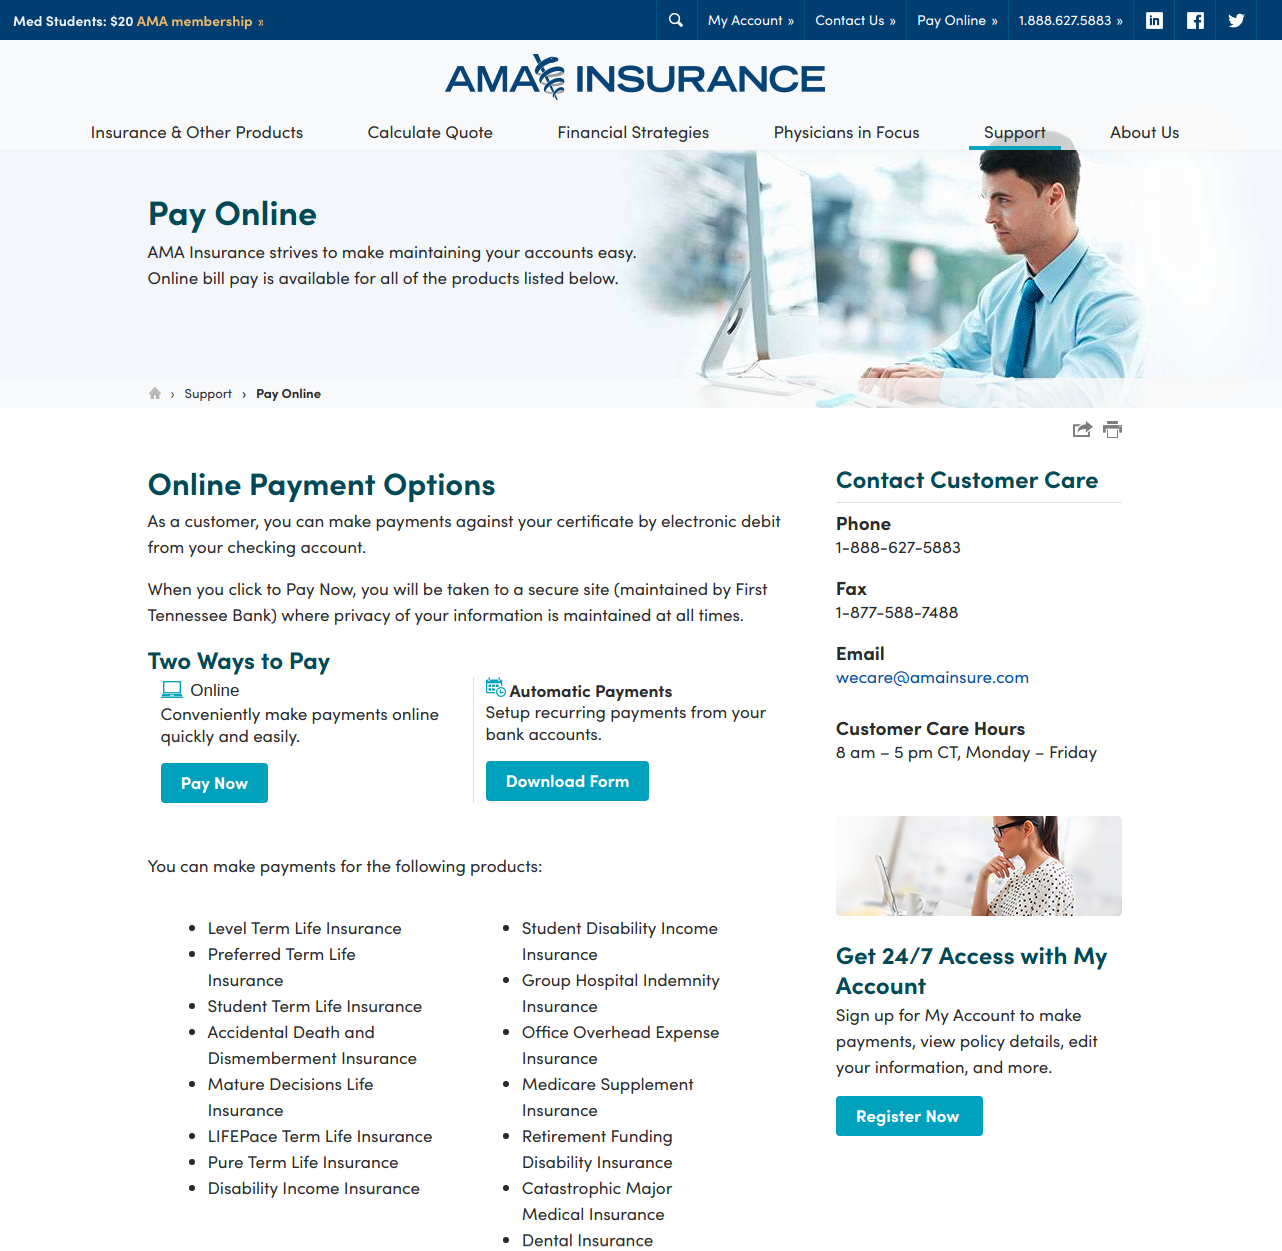 Pay Online AMA Insurance for Physicians